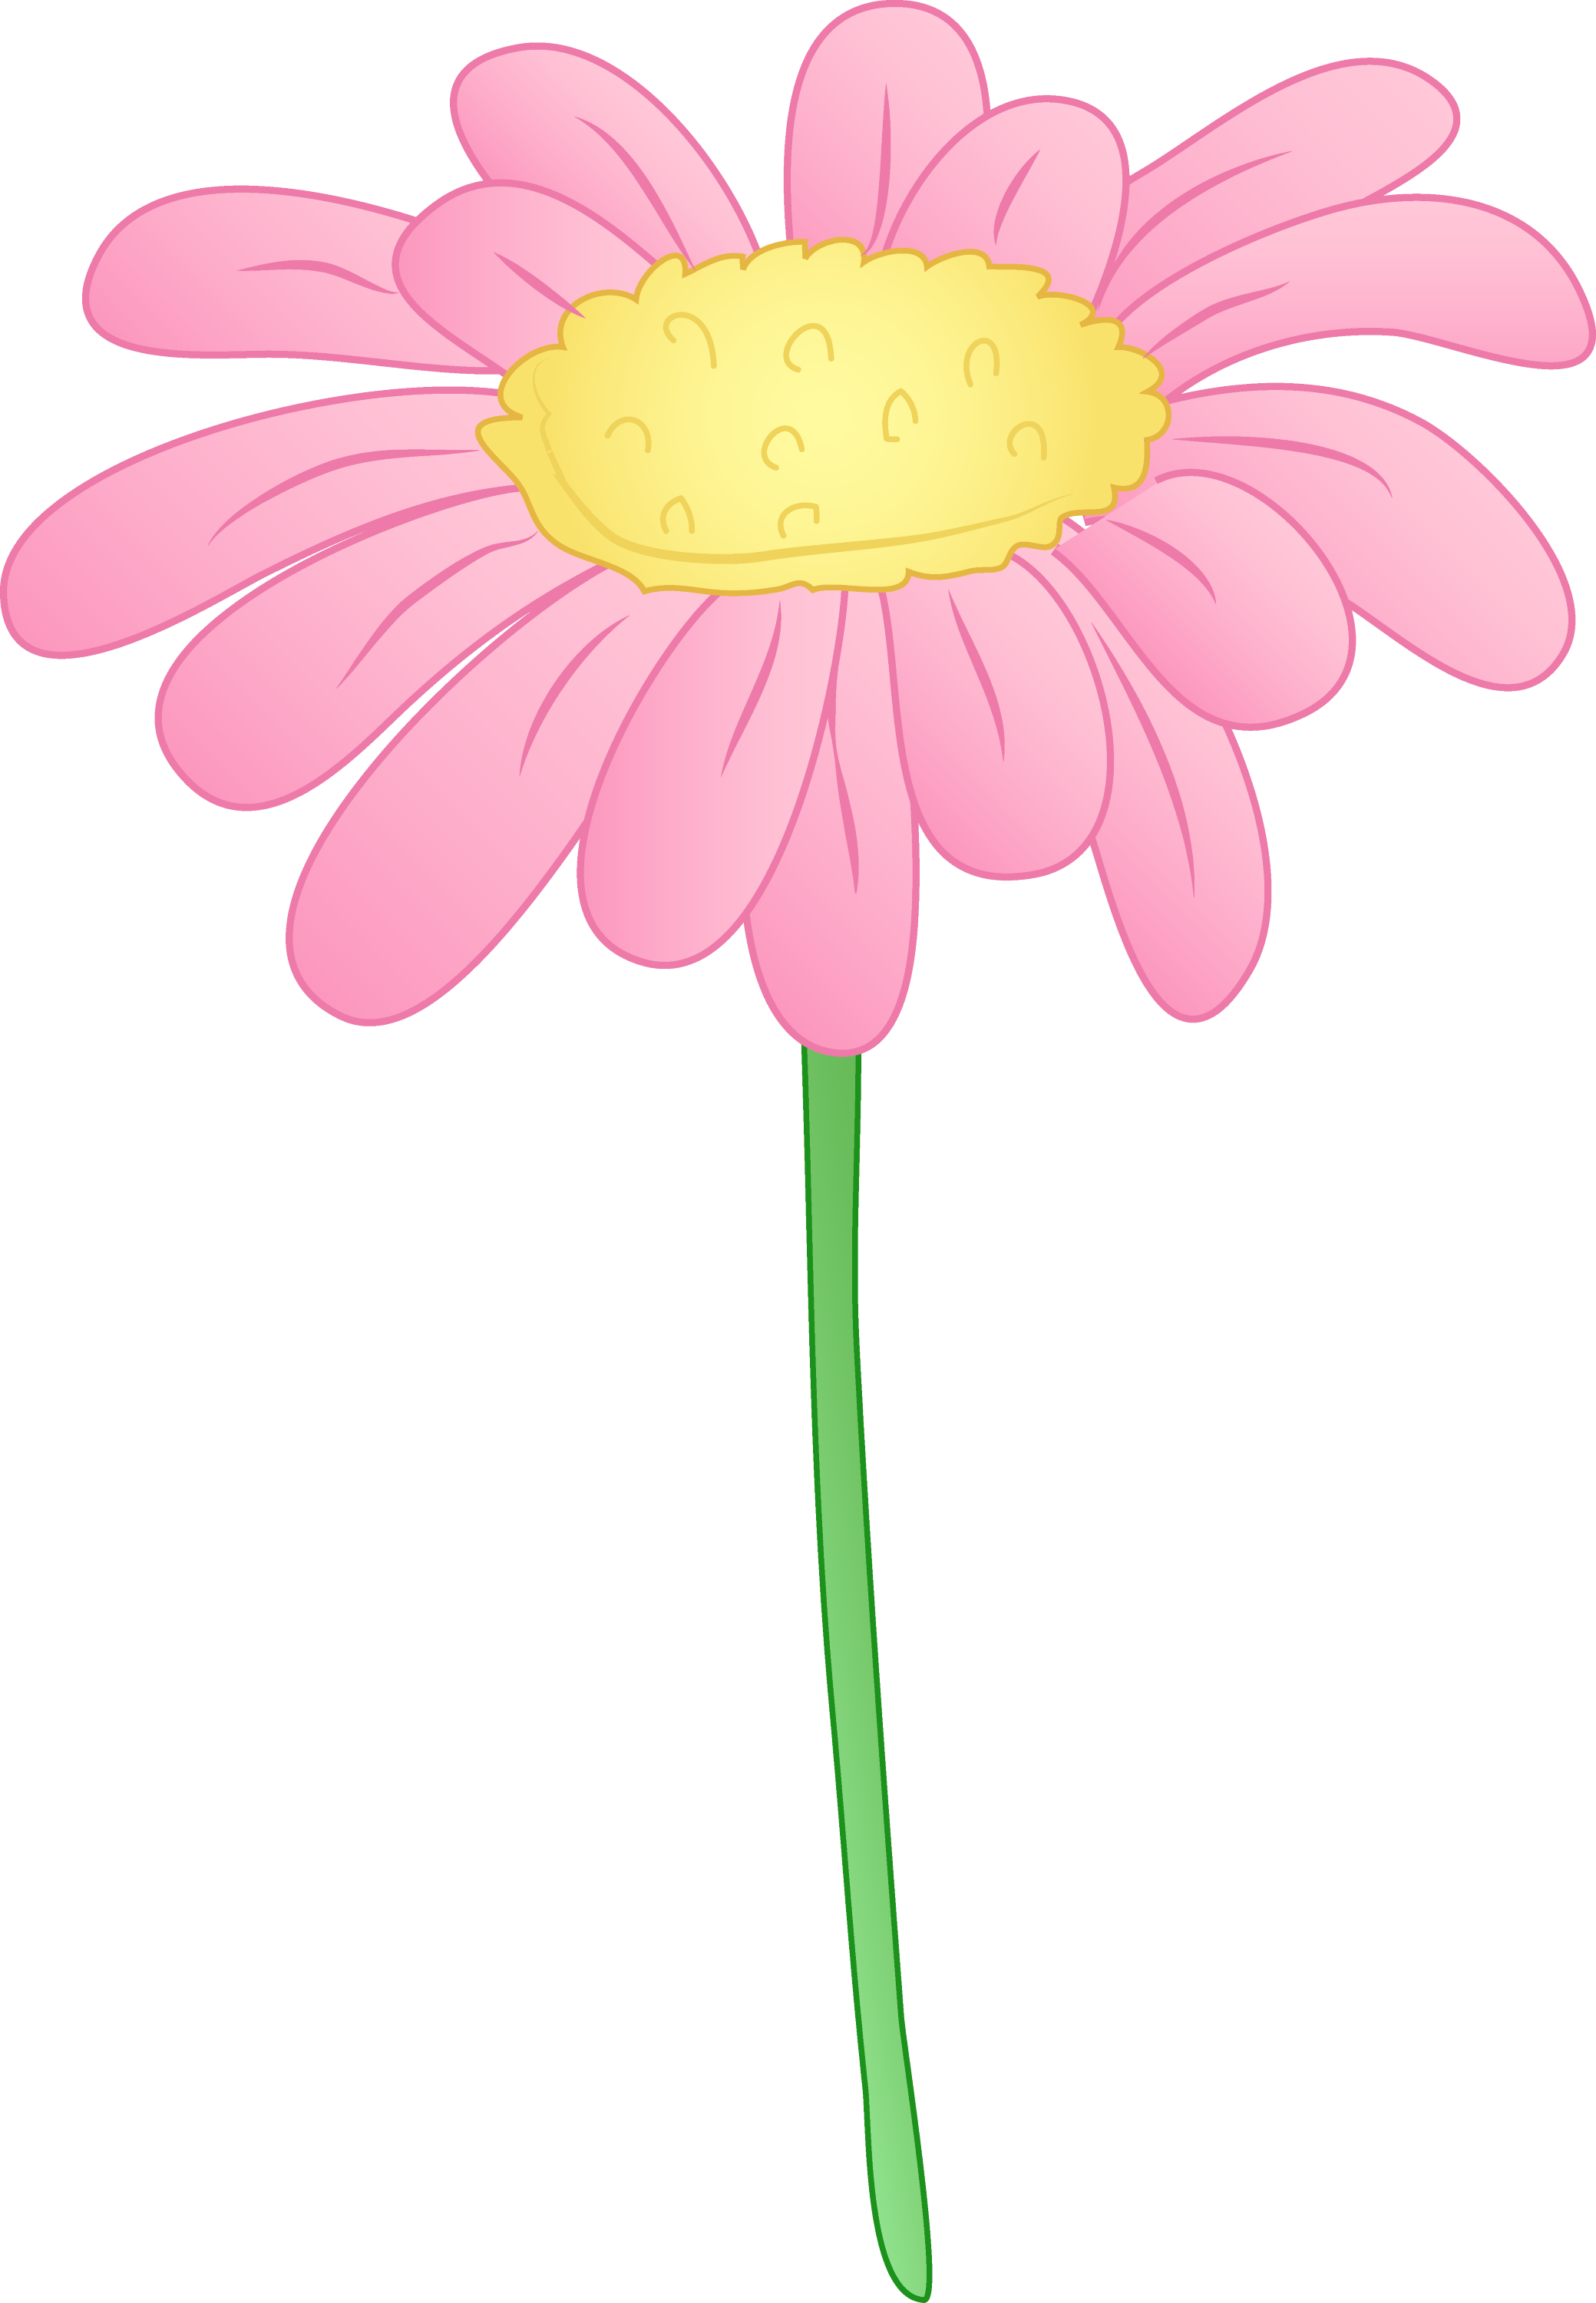 Pretty Pink Daisy Flower Free Clip Art